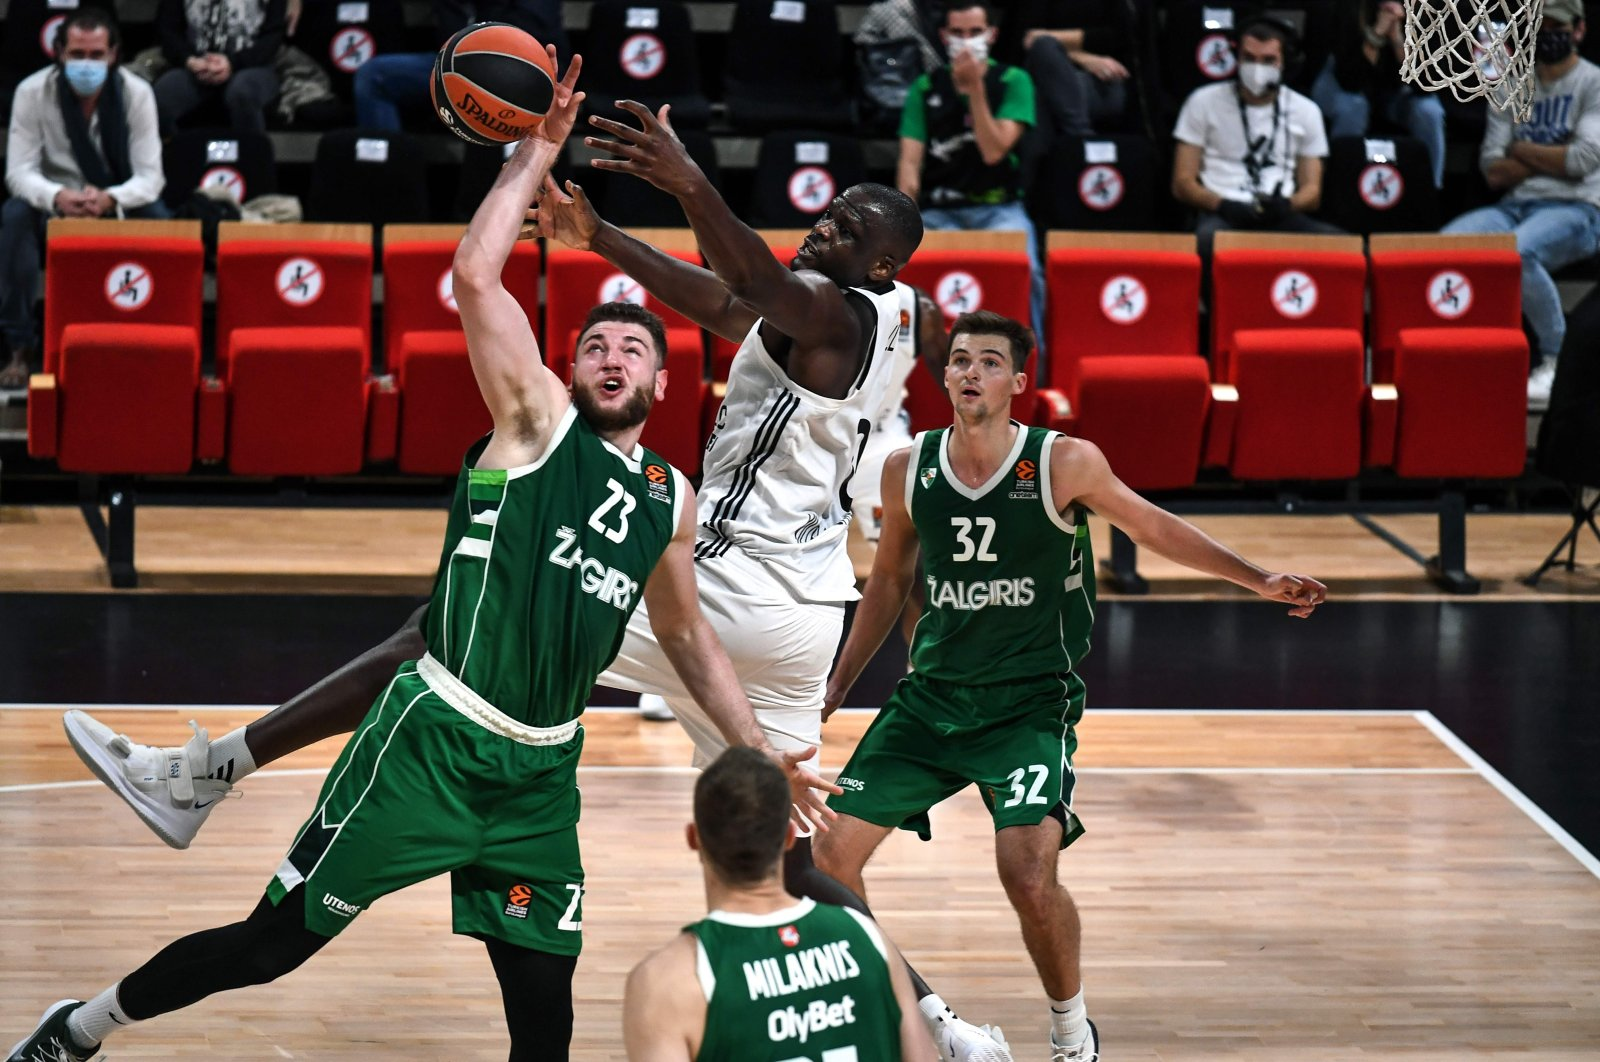 ASVEL Lyon's Moustapha Fall (C) fights for the ball with Zalgiris Kaunas' Martinas Geben (L) during a match in Villeurbanne, France, Oct. 29, 2020. (AFP Photo)